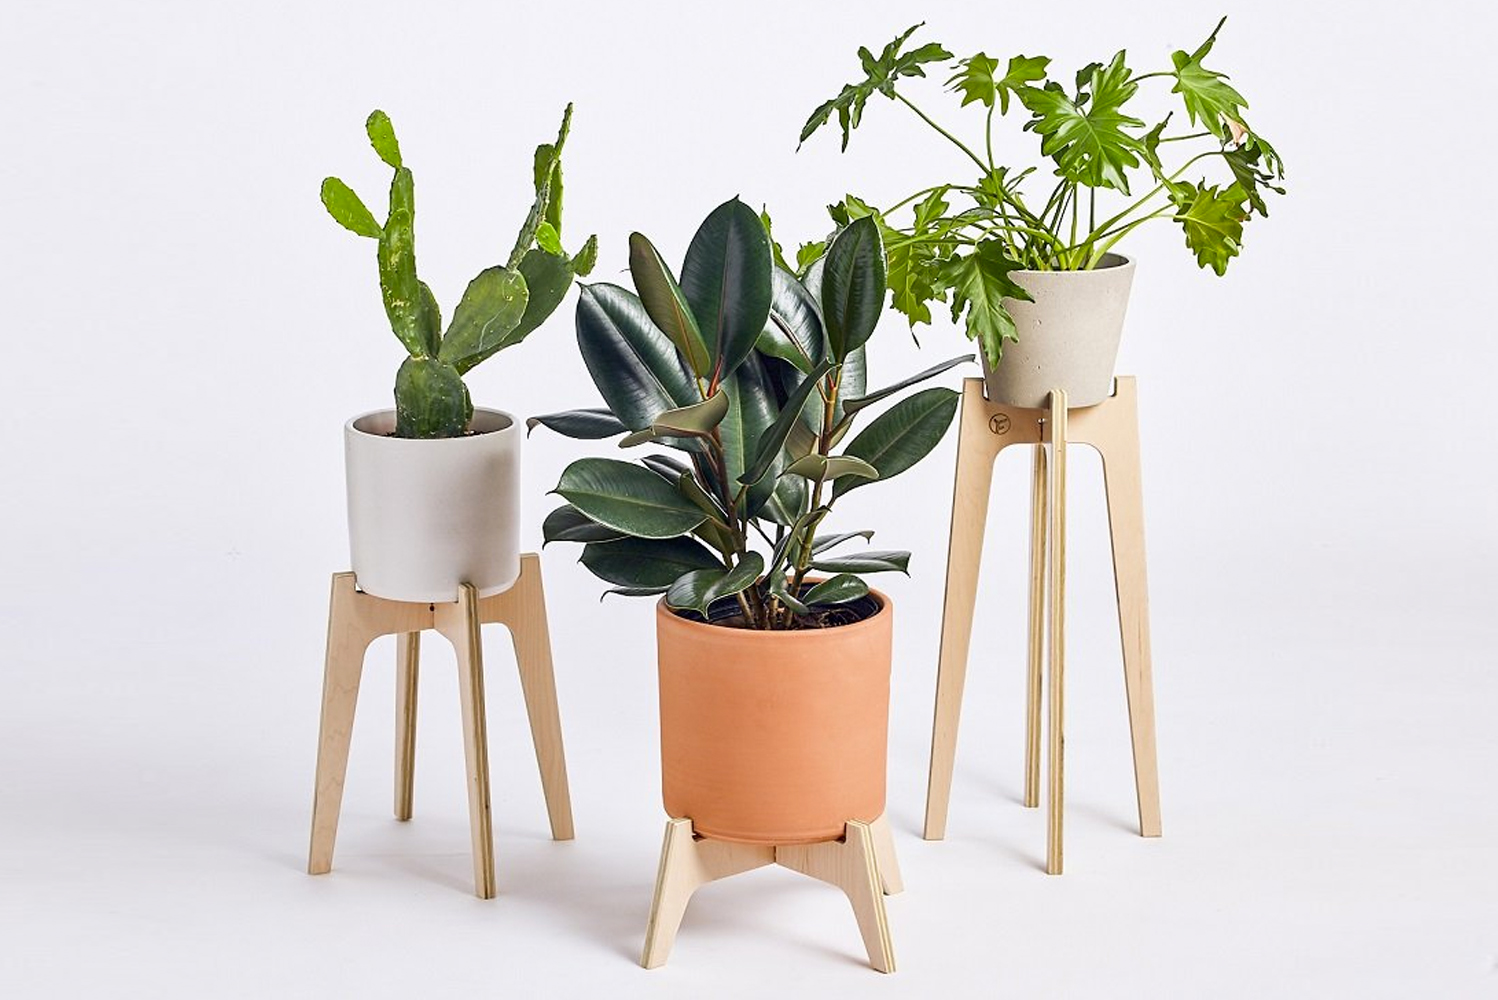 Each plant stand consists of two pieces that slide together for tool-free assembly. These stands may be used indoors and outdoors.